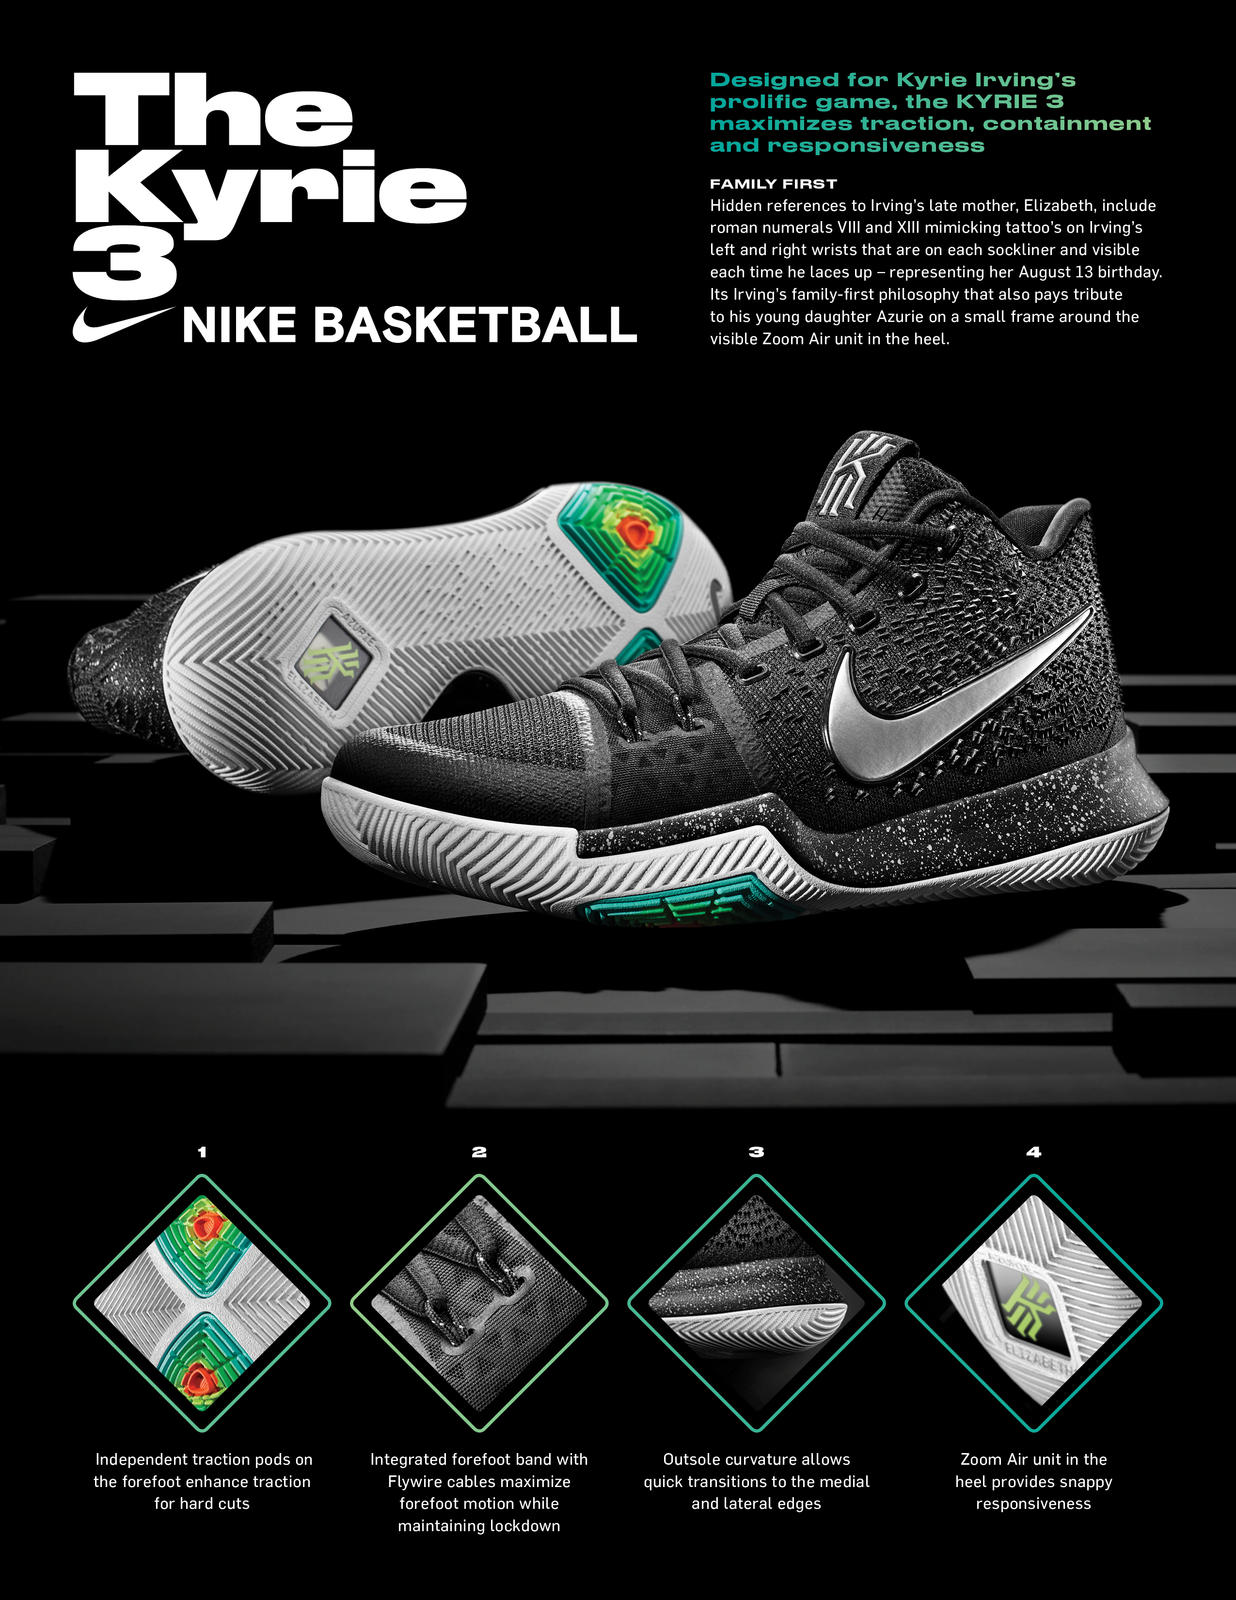 27b934bfb45d ... new style kyrie 3 built for kyrie irvings prolific game nike news a96d2  bef2c